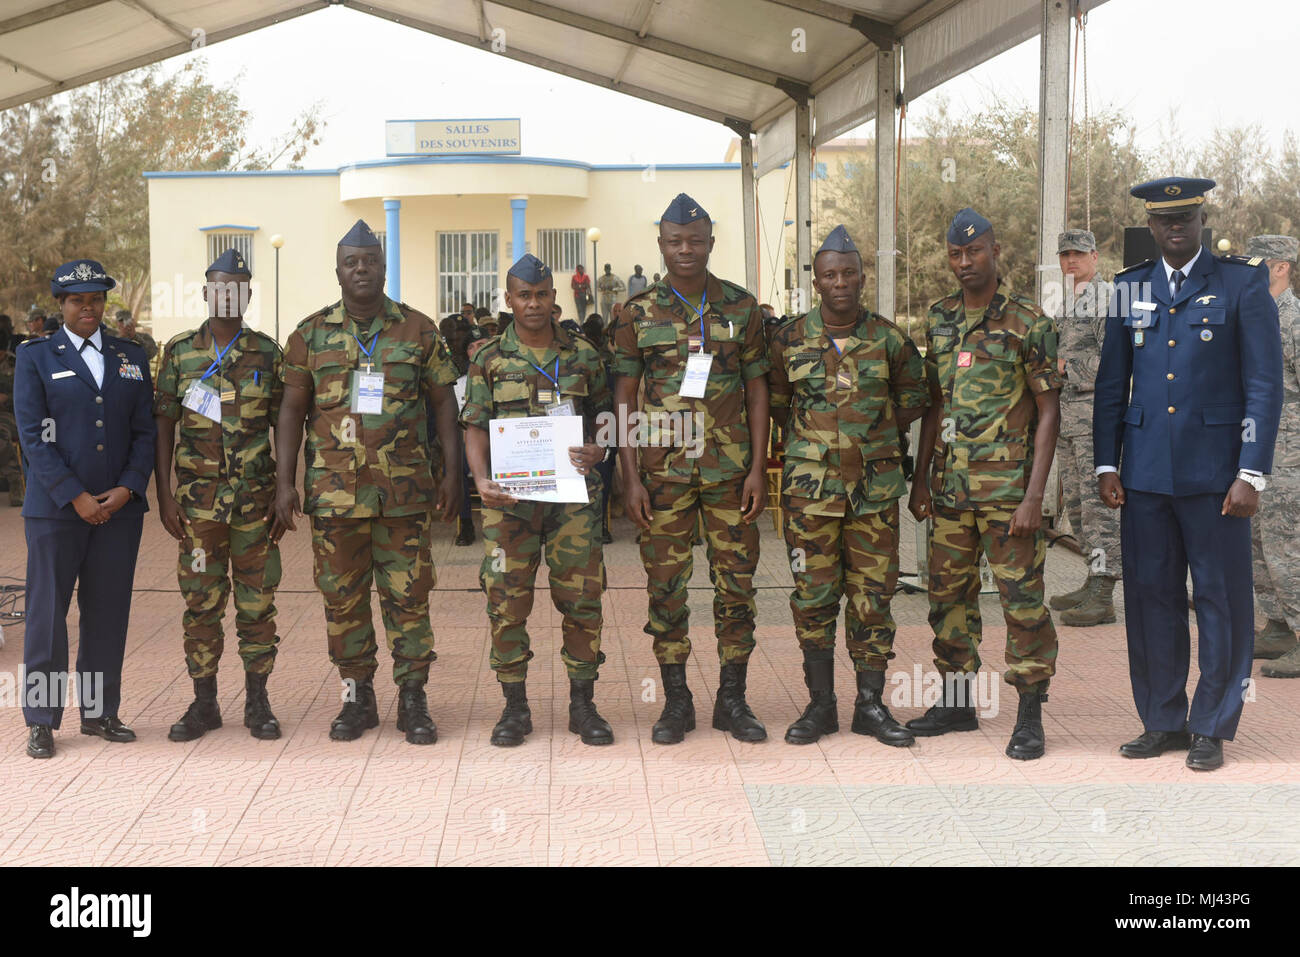 African Partnership Flight participants from Togo pose for a photo after the closing ceremony for APF at Captain Andalla Cissé Air Base, Senegal, March 23, 2018. The APF program is U.S. Air Forces in Africa's premier security cooperation program with African partner nations, with the goal of improving professional military aviation knowledge and skills. (U.S. Air Force Image collection celebrating the bravery dedication commitment and sacrifice of U.S. Armed Forces and civilian personnel. - Stock Image